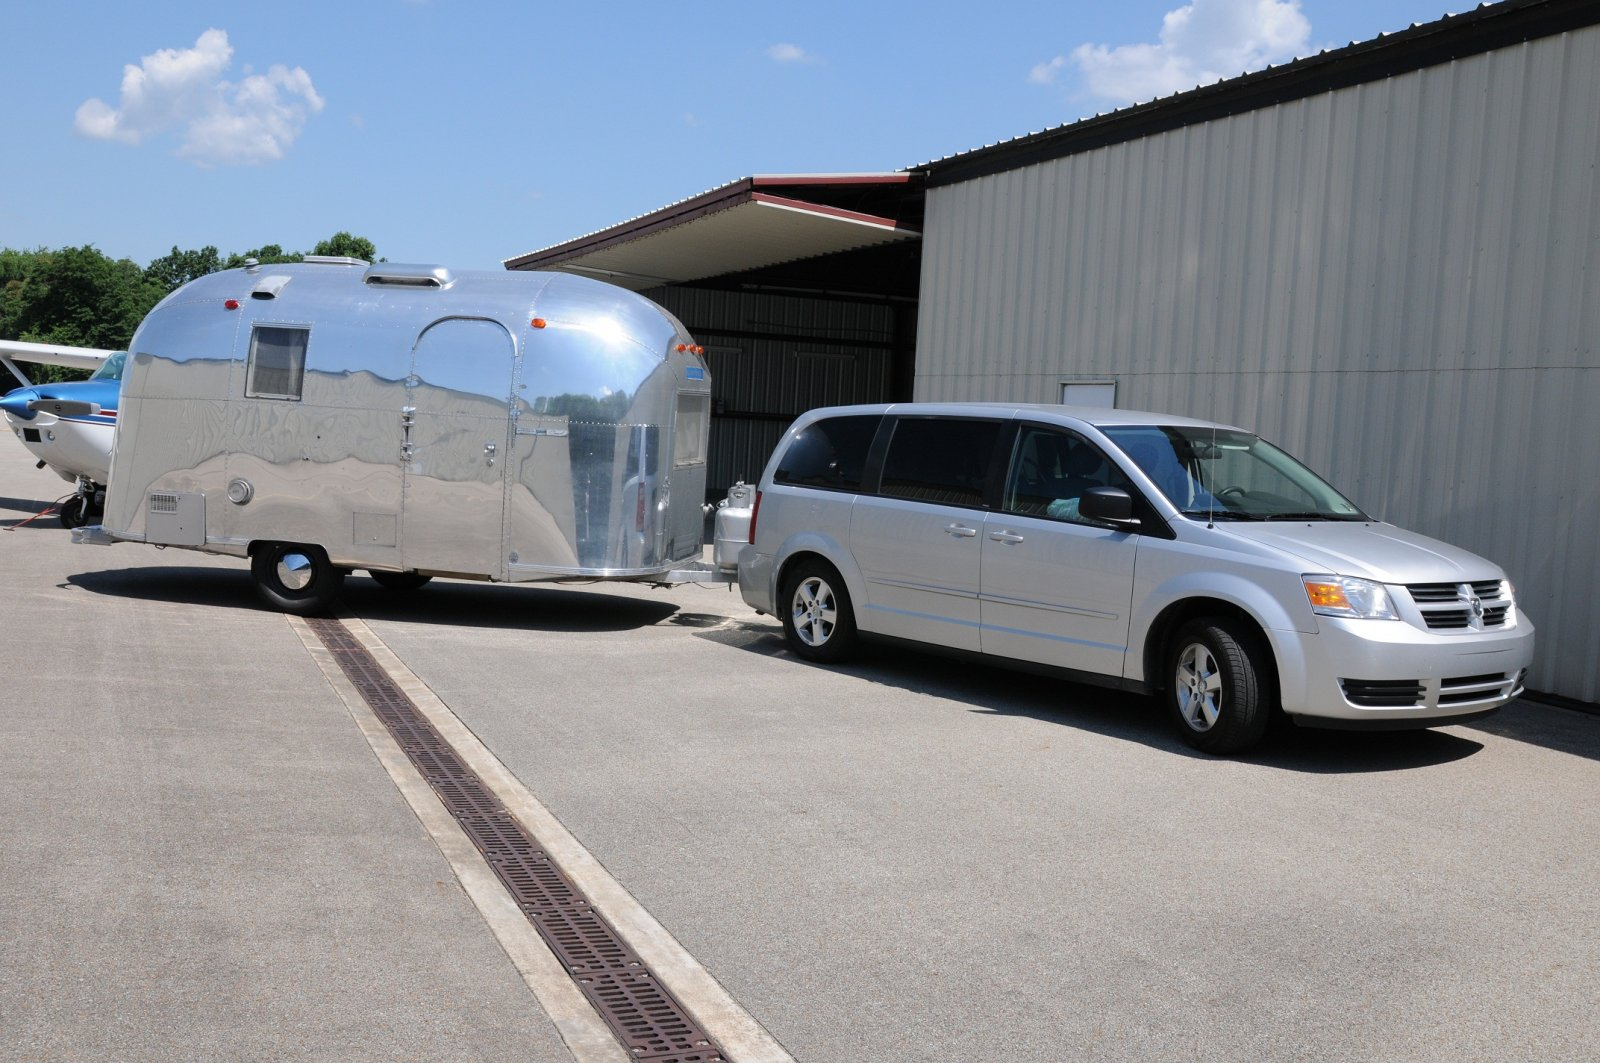 Click image for larger version  Name:AS and Caravan.jpg Views:128 Size:295.4 KB ID:163642